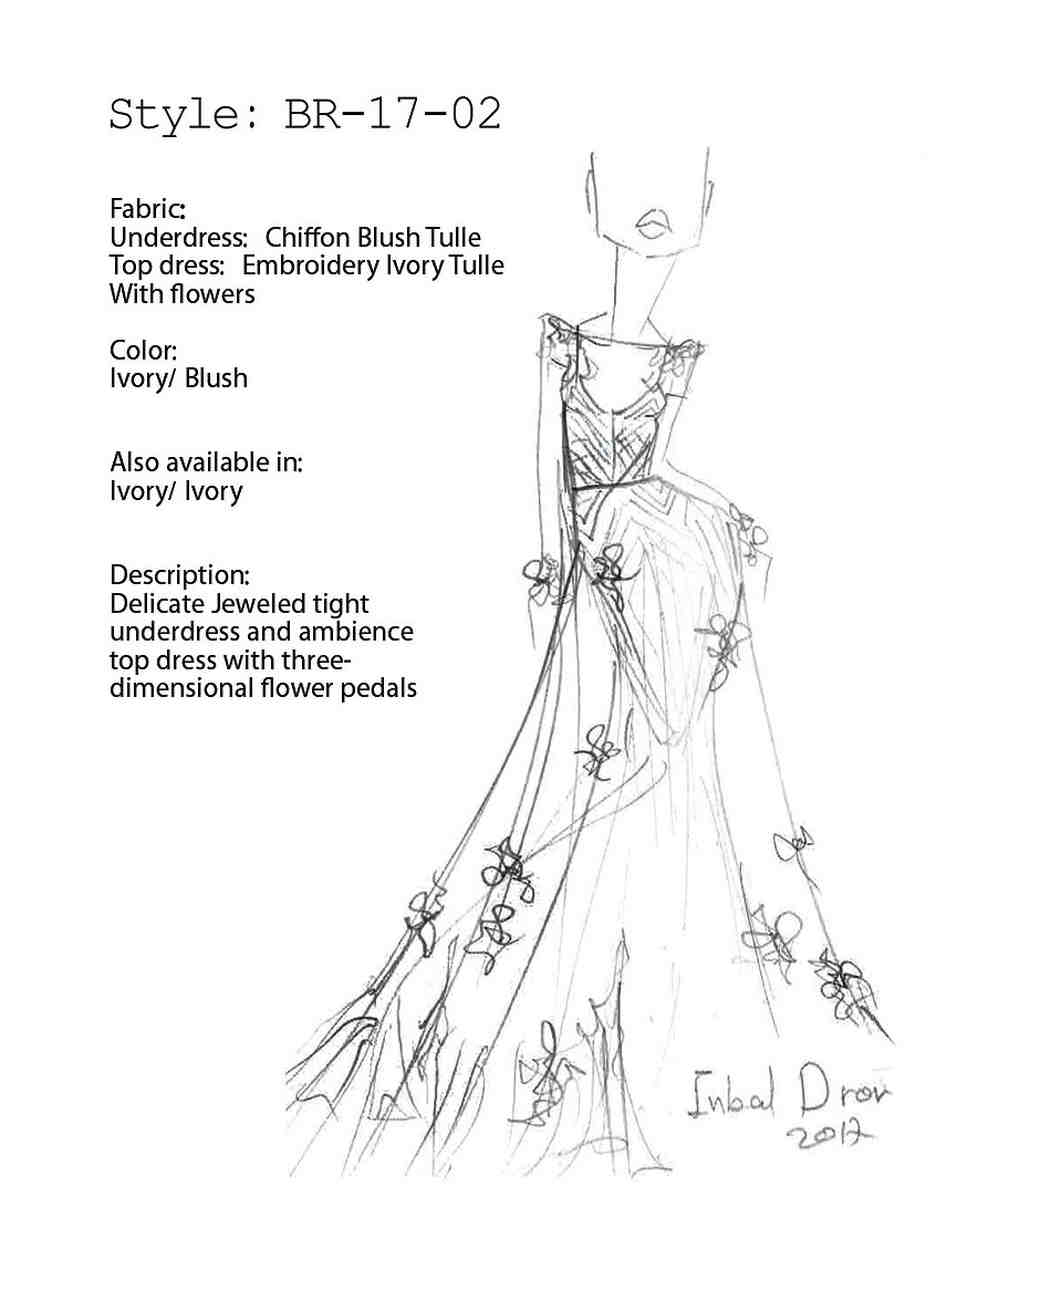 inbal dror fall 2017 exclusive wedding dress sketch